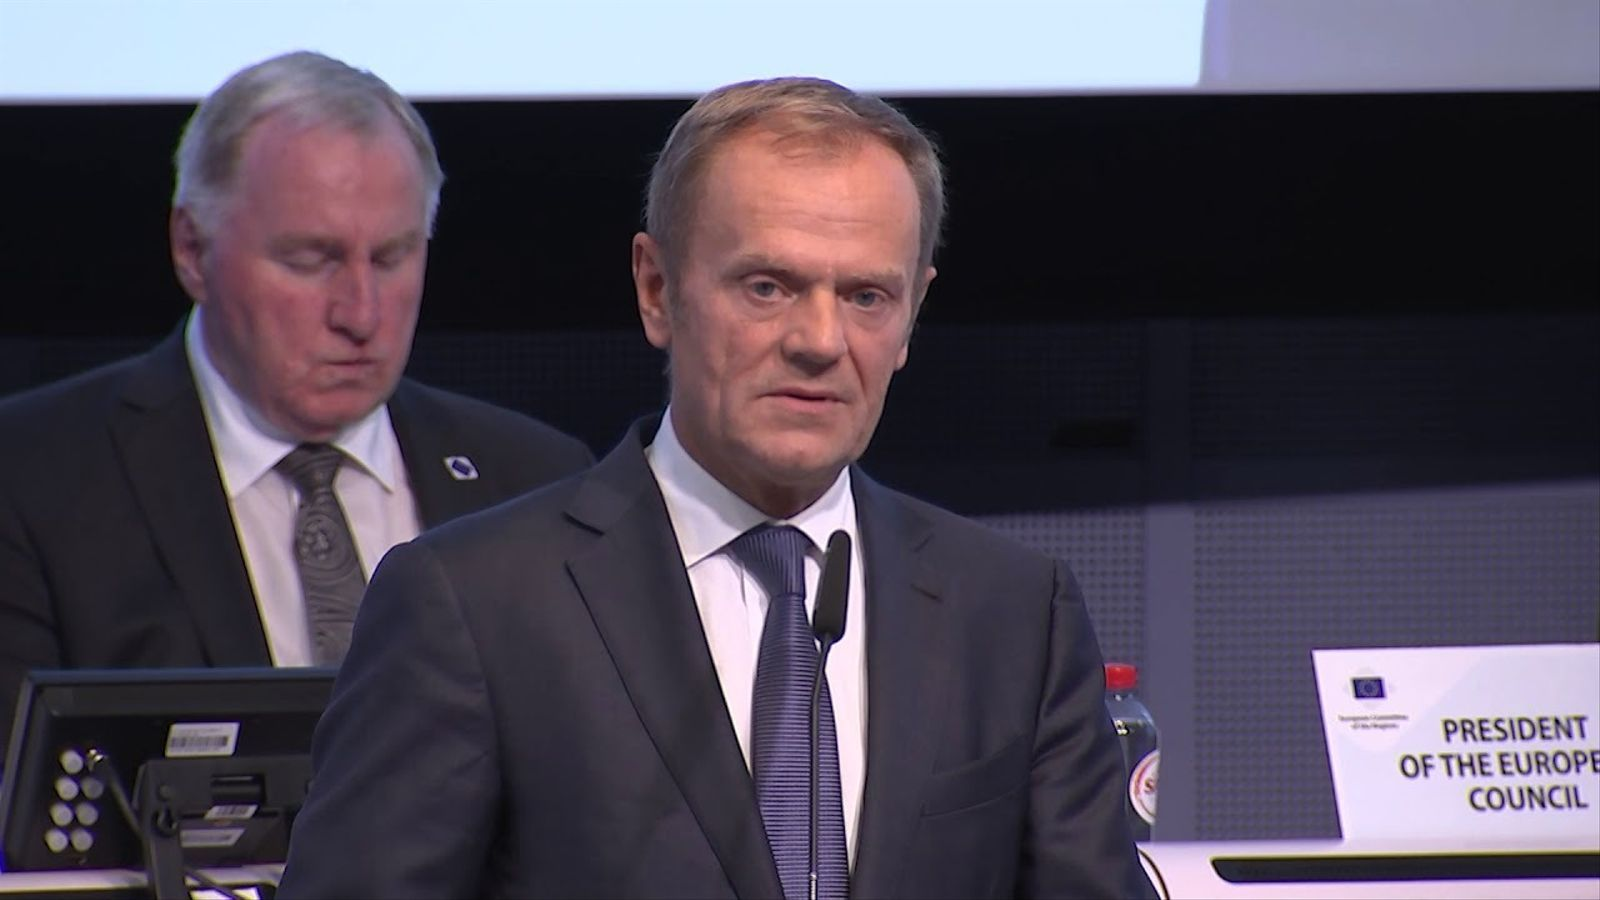 Discurs de Donald Tusk referint-se al conflicte català